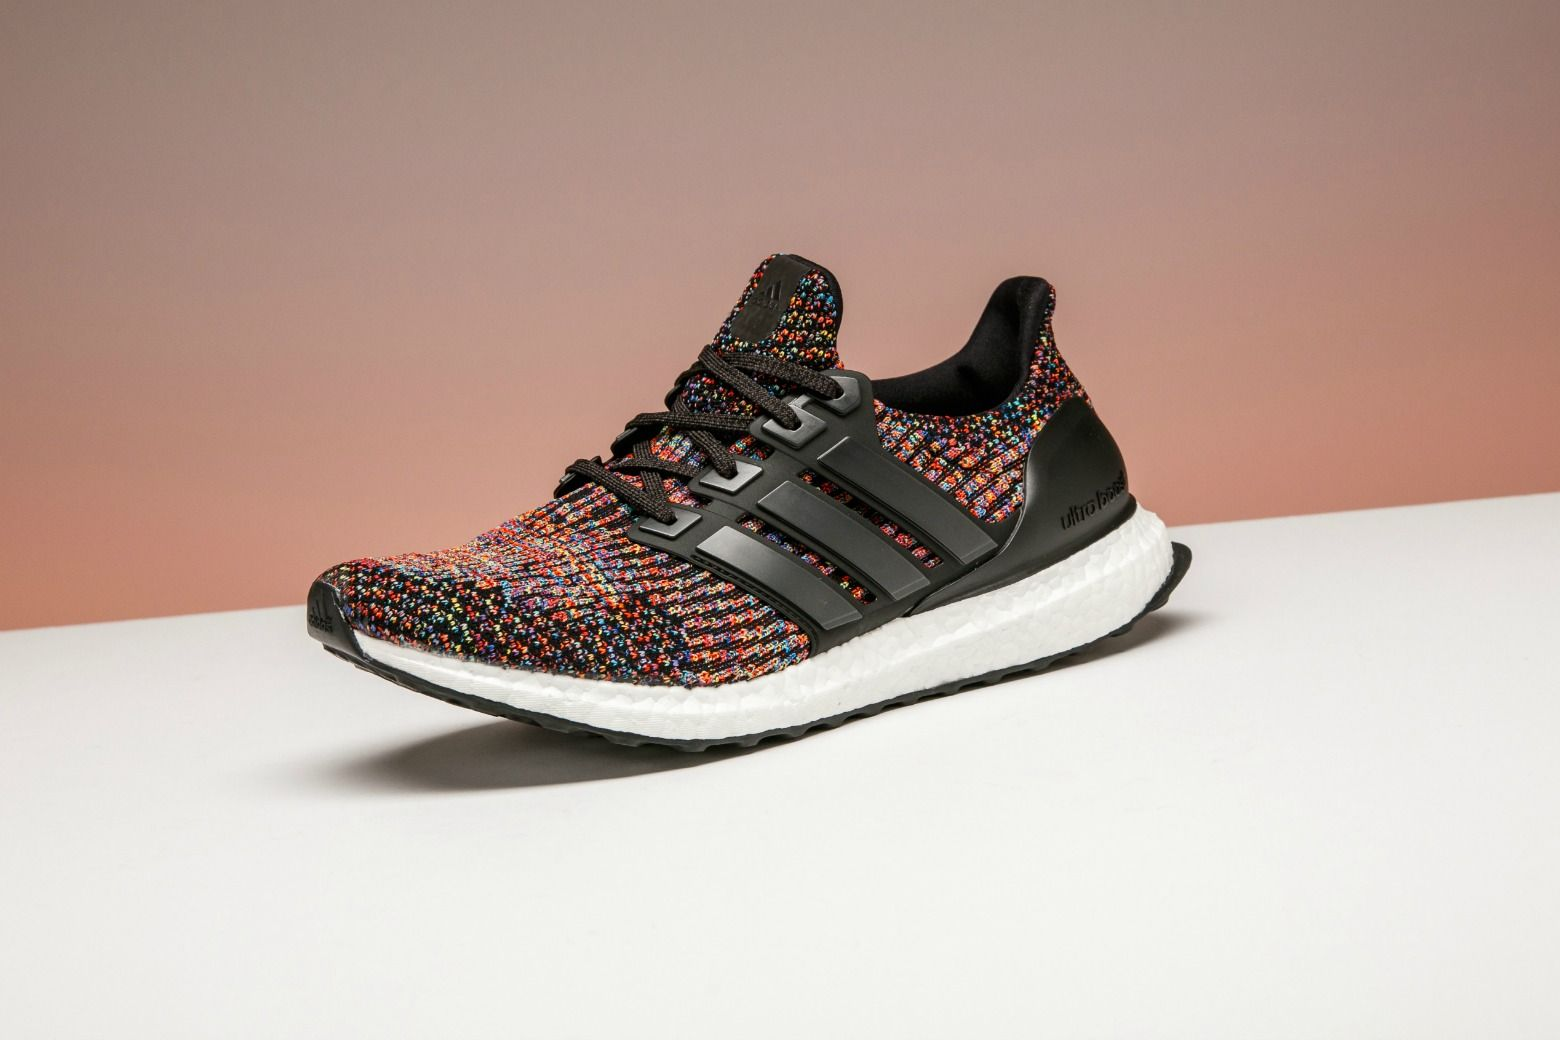 ADIDAS ULTRA BOOST MENS SHOES ST 3.0 LIMITED BLACK RUN NEW